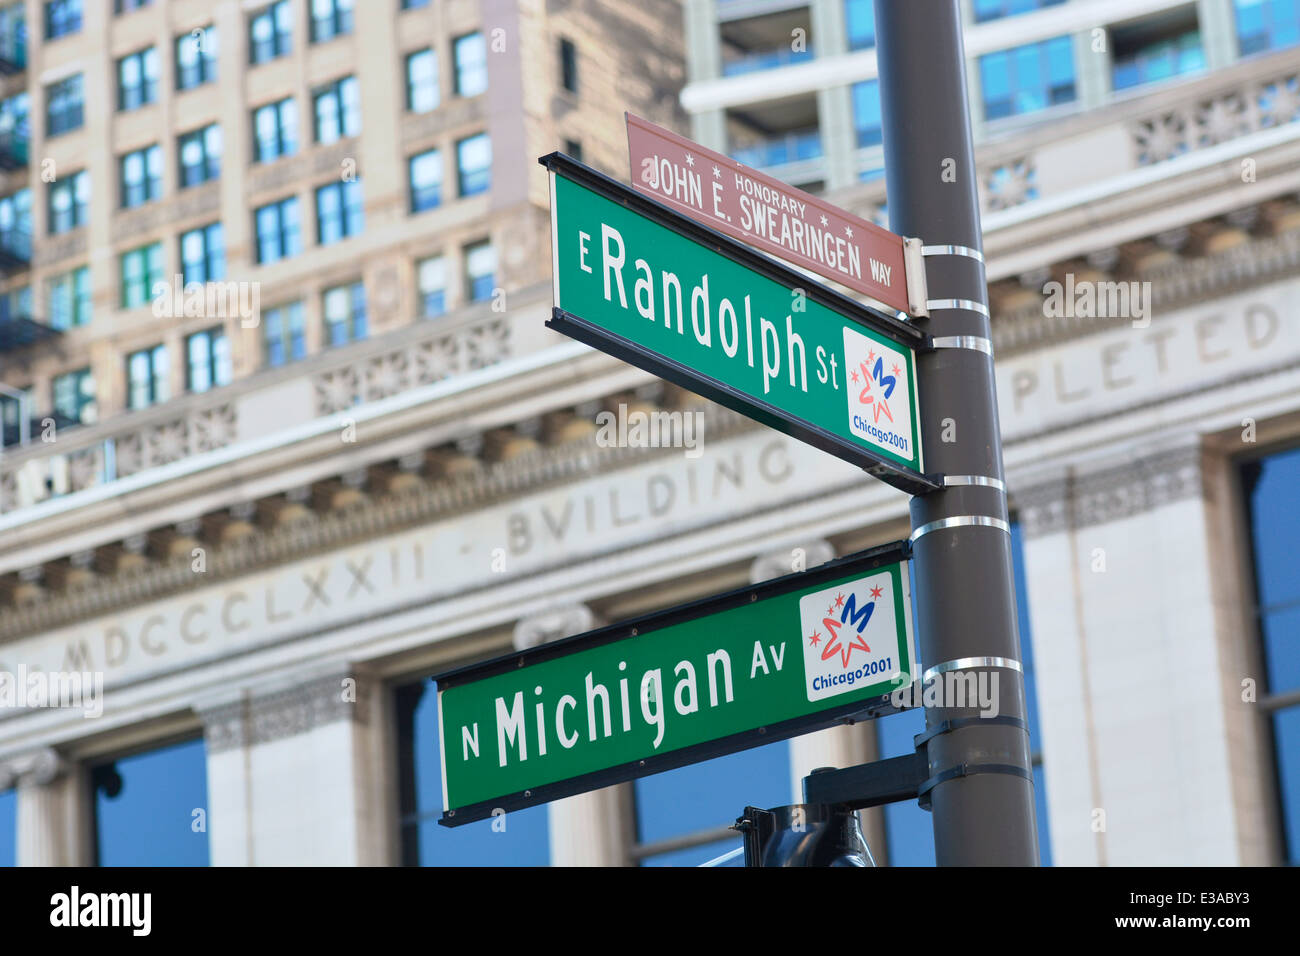 Street Sign Signs Chicago, N Michigan Av and E Randolph St - Stock Image